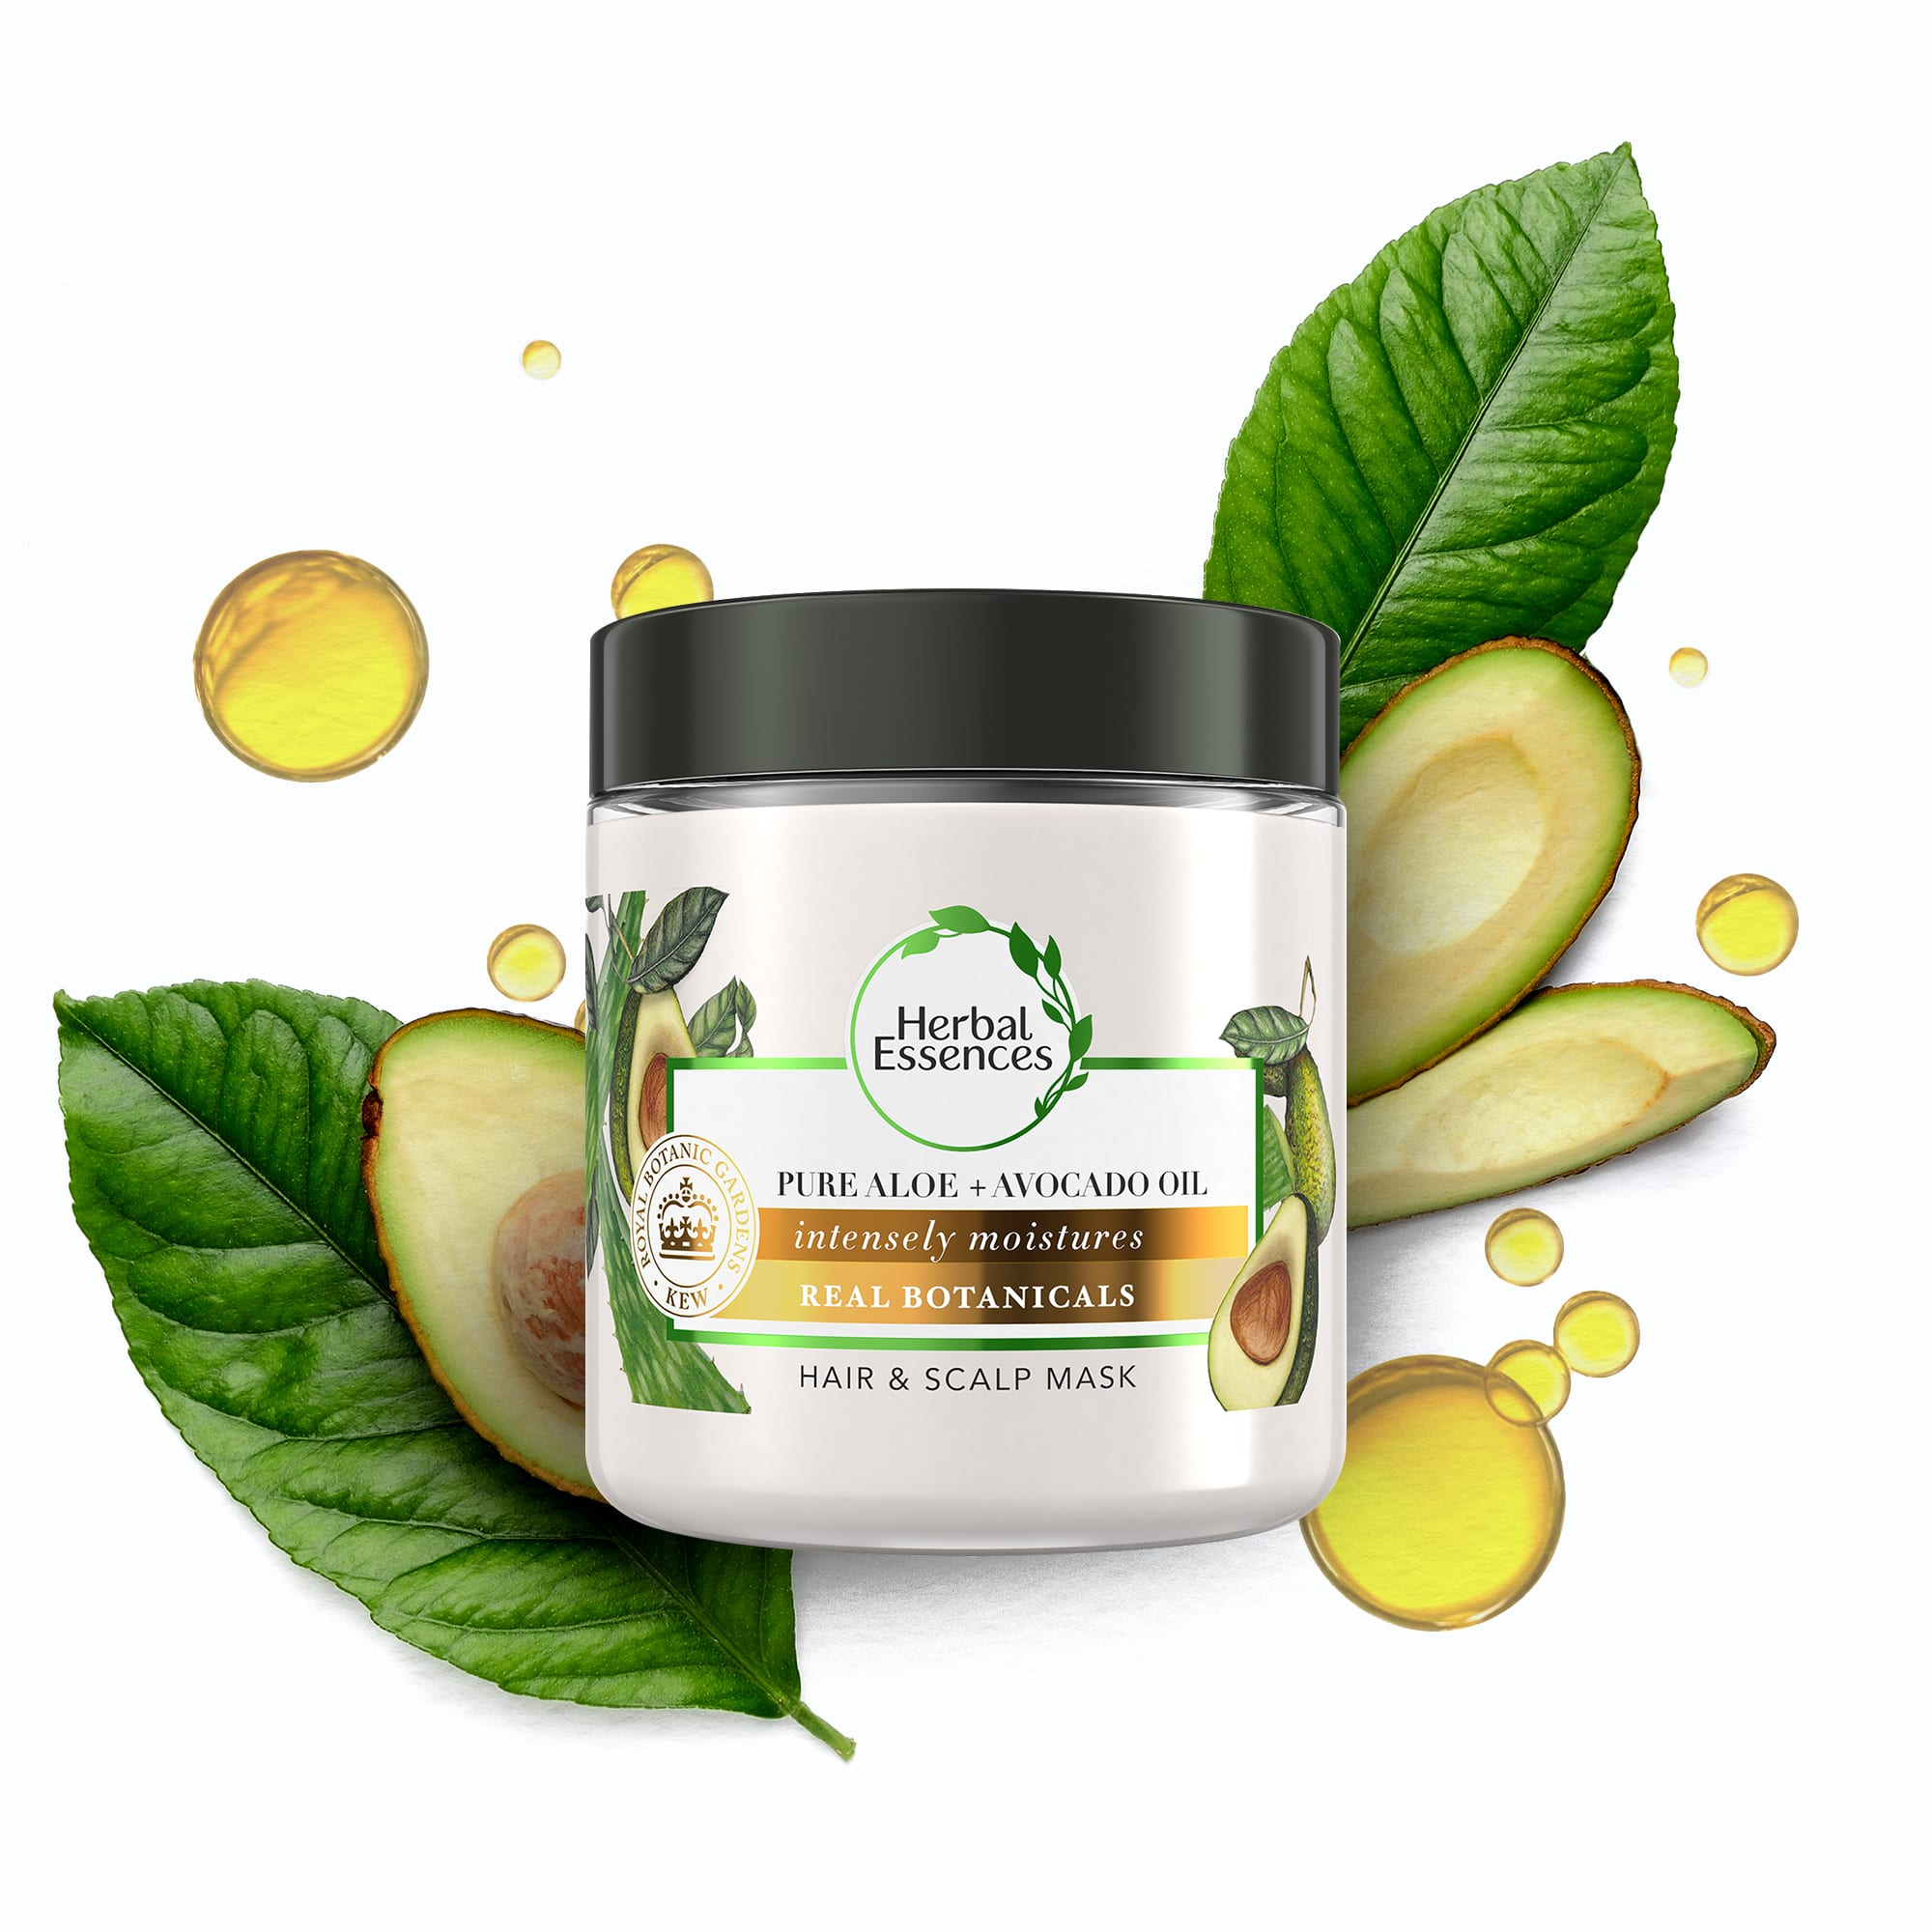 Herbal Essences Avocado Oil Hair Mask